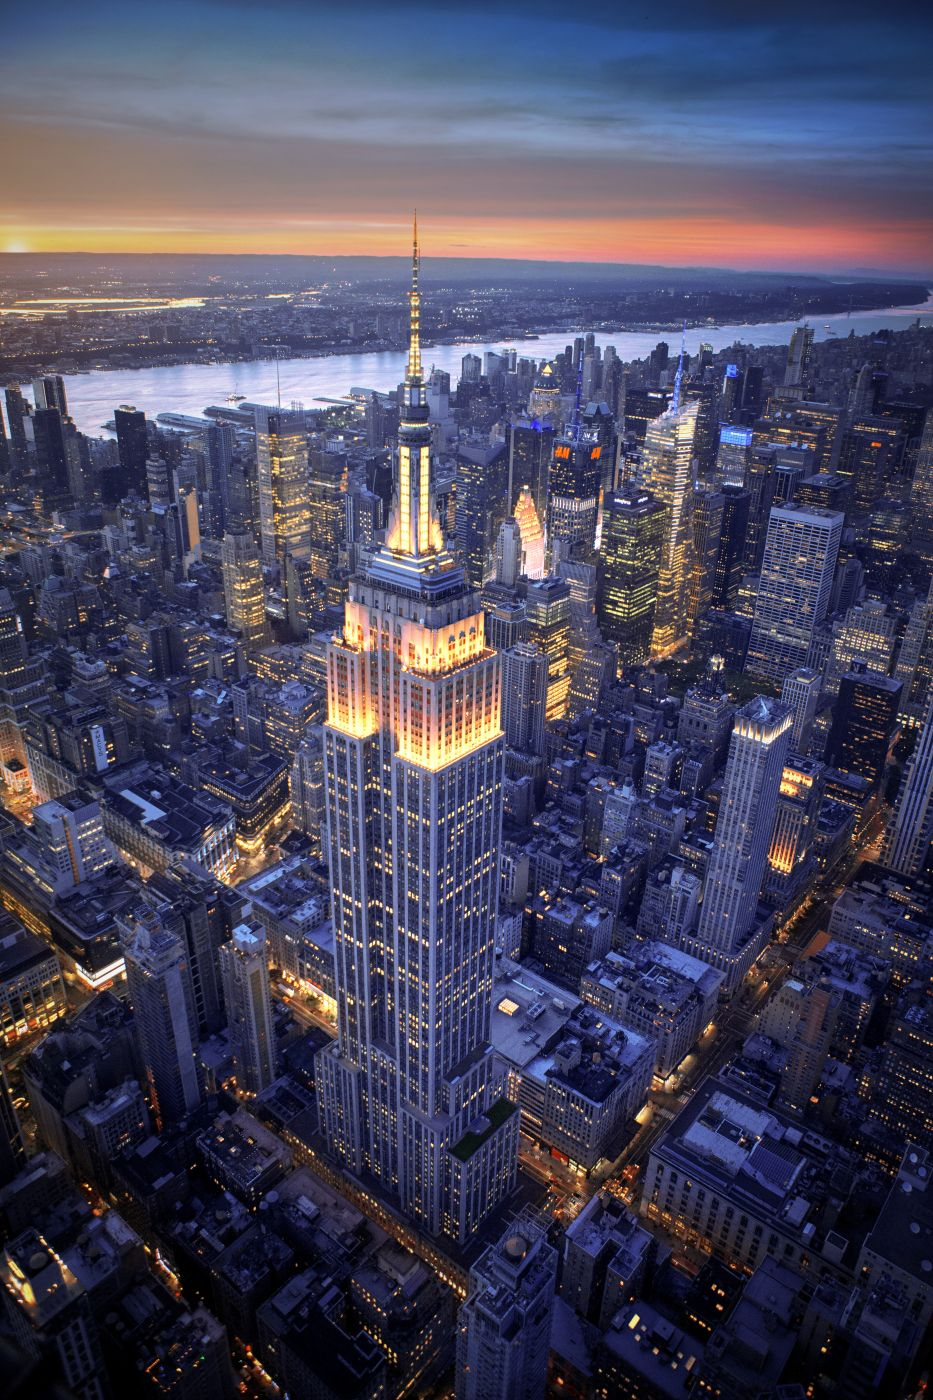 Empire State building from Heli, USA